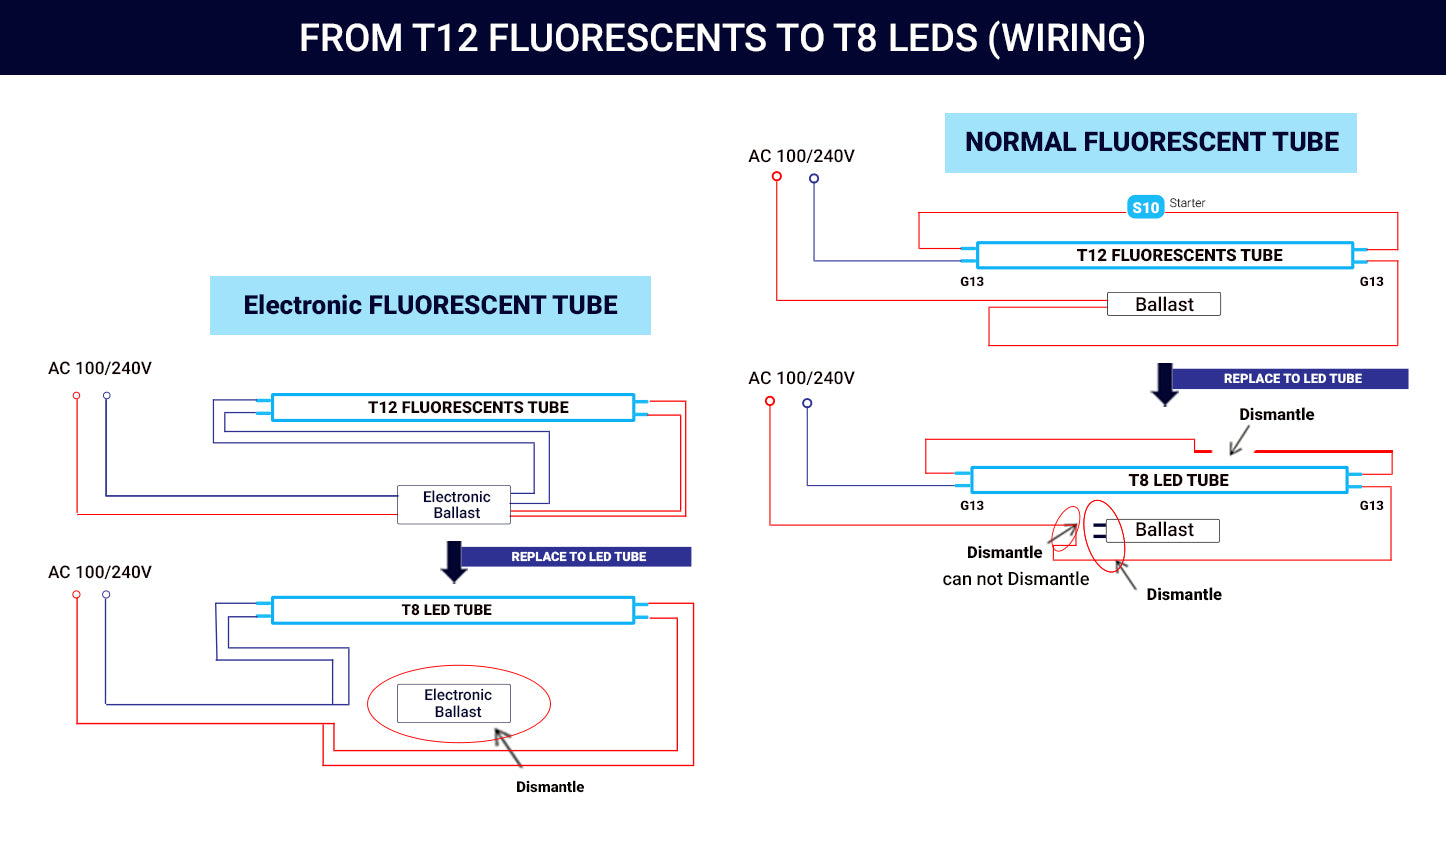 [SCHEMATICS_4NL]  Wiring Diagram For T12 To T8 Led - General Wiring Diagrams | T12 To T8 Wiring Diagram |  | 151.he.tarnopolski.de